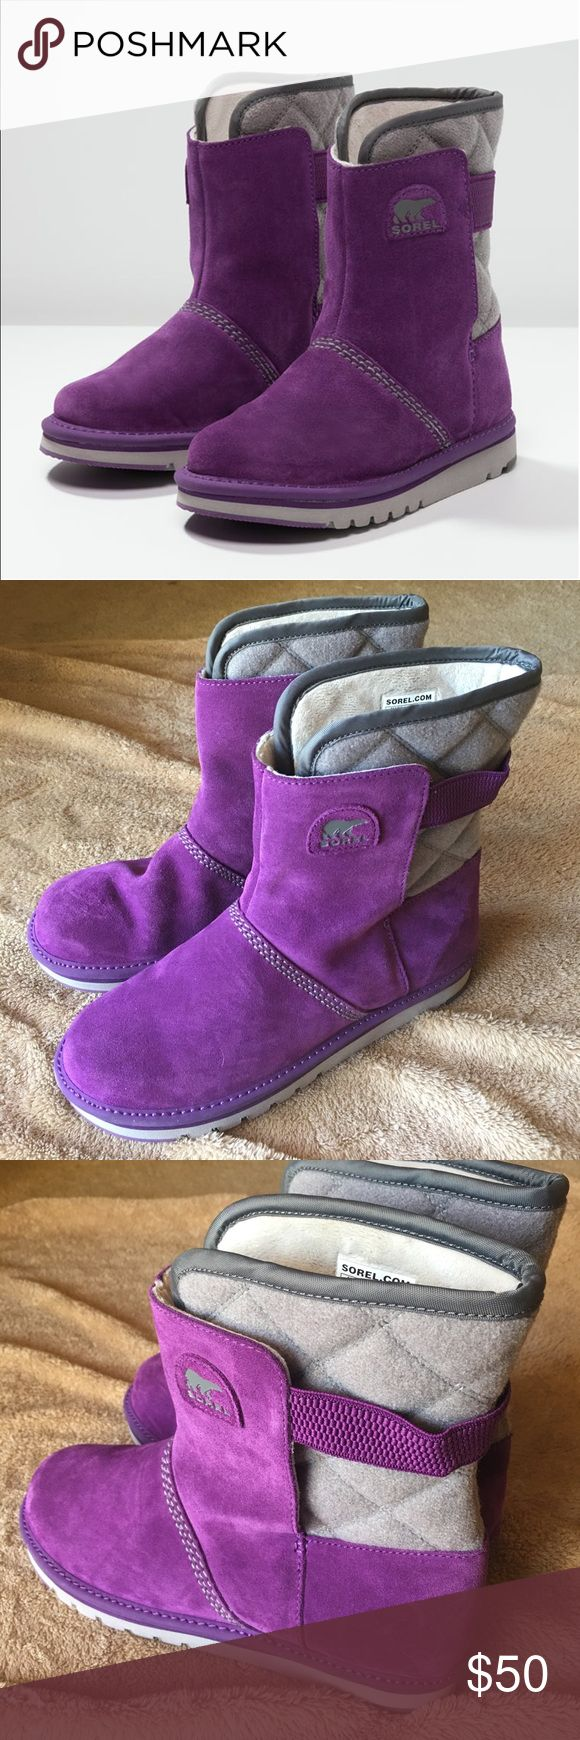 Sorel Kids Rylee Waterproof Boots New - never worn! Waterproof suede and fleece lining will keep their feet toasty throughout the cold months. Round toe. Waterproof. Quilted back panel. Split shaft with elastic band. Fleece lining. Pull-on. Imported. Let me know if you have any questions! #199 Sorel Shoes Boots